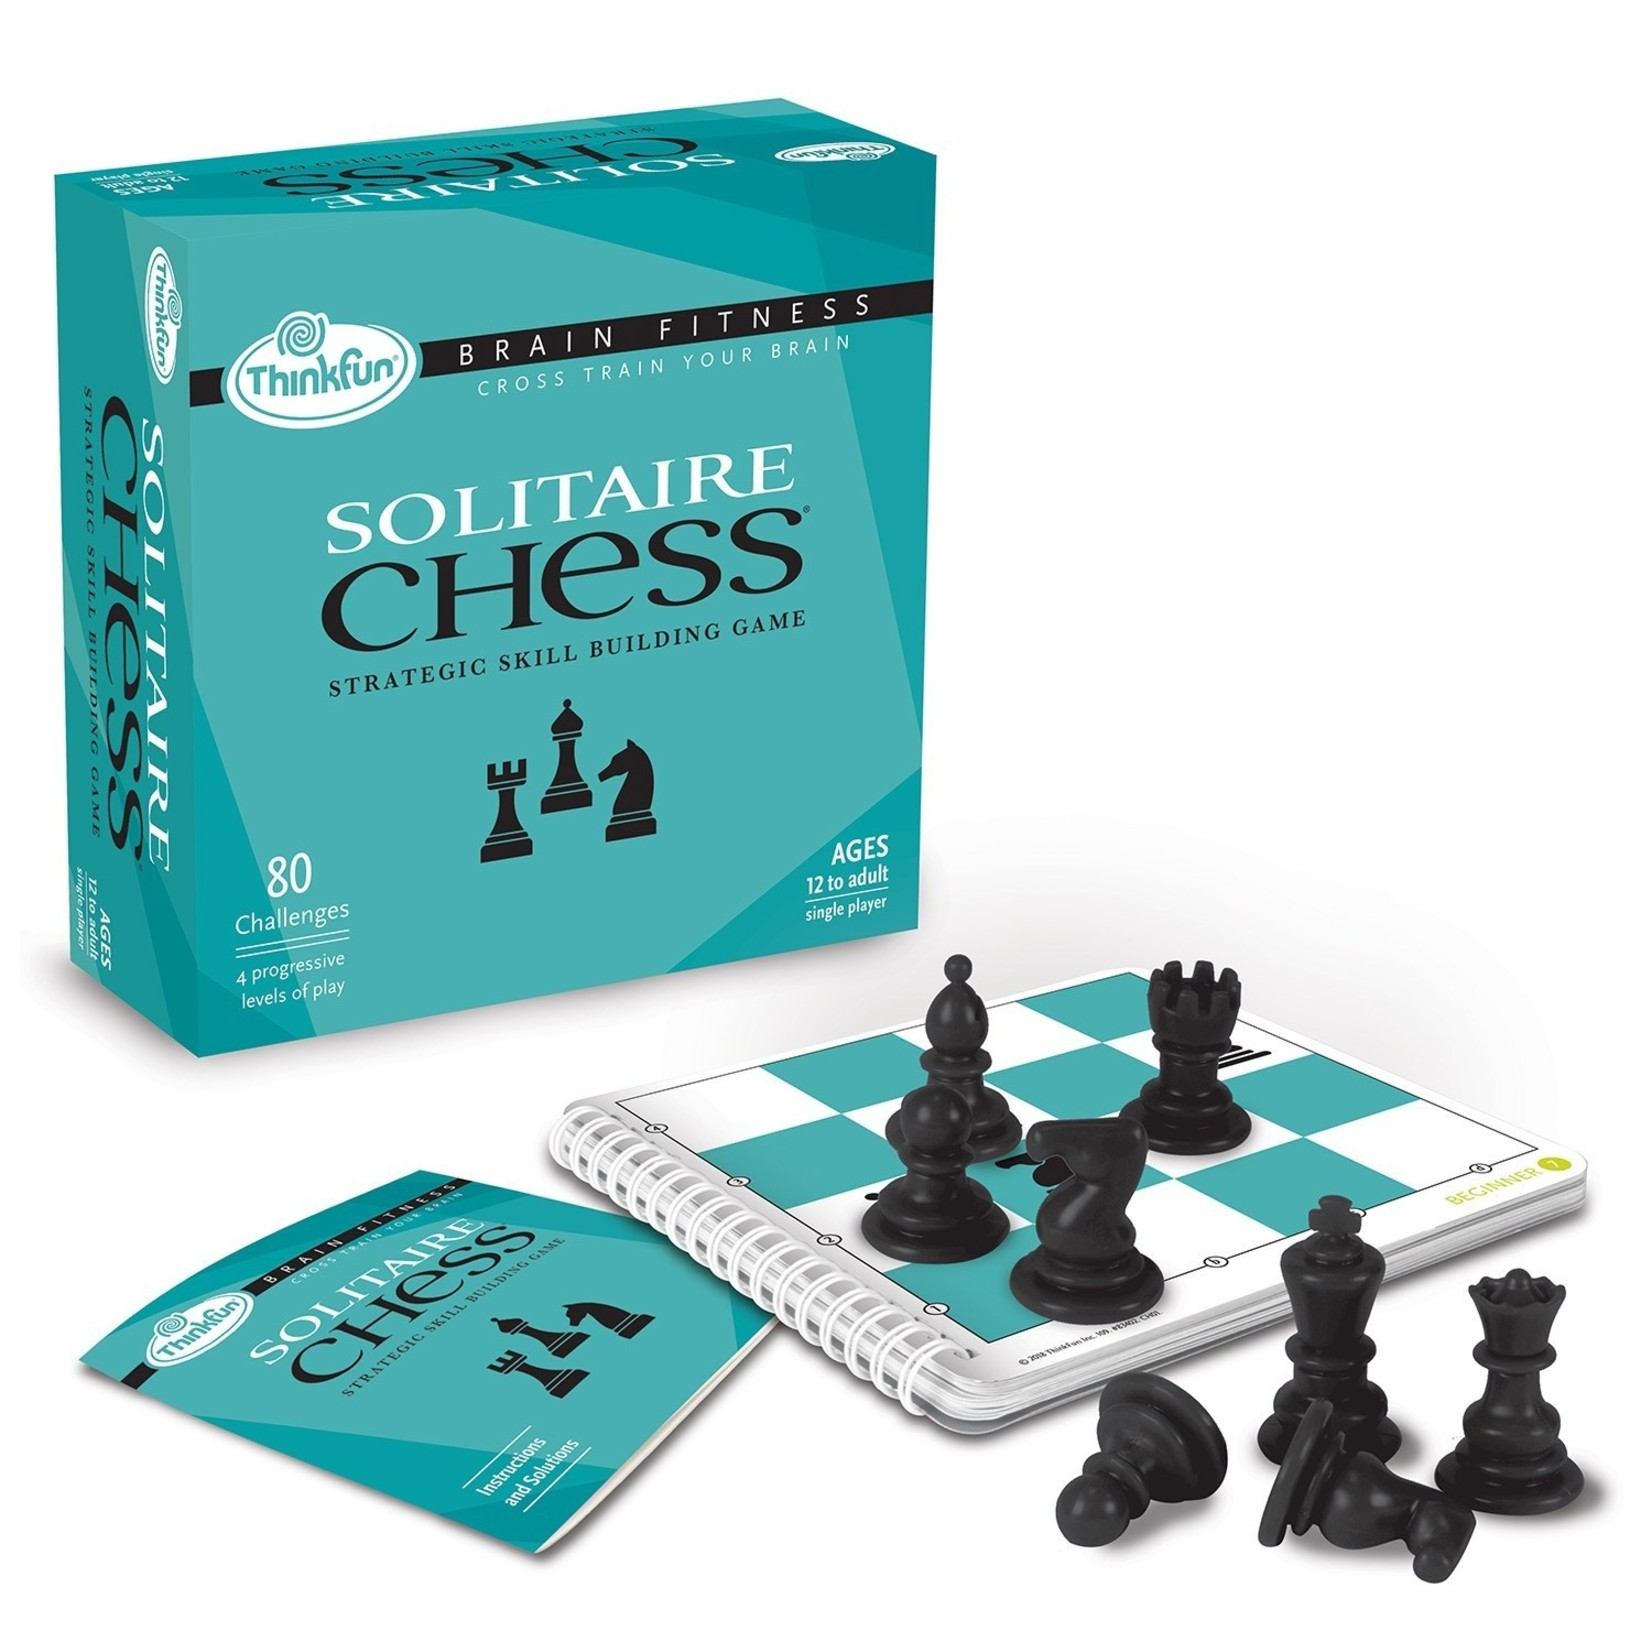 ThinkFun Solitaire Chess Brain Fitness Puzzle Game